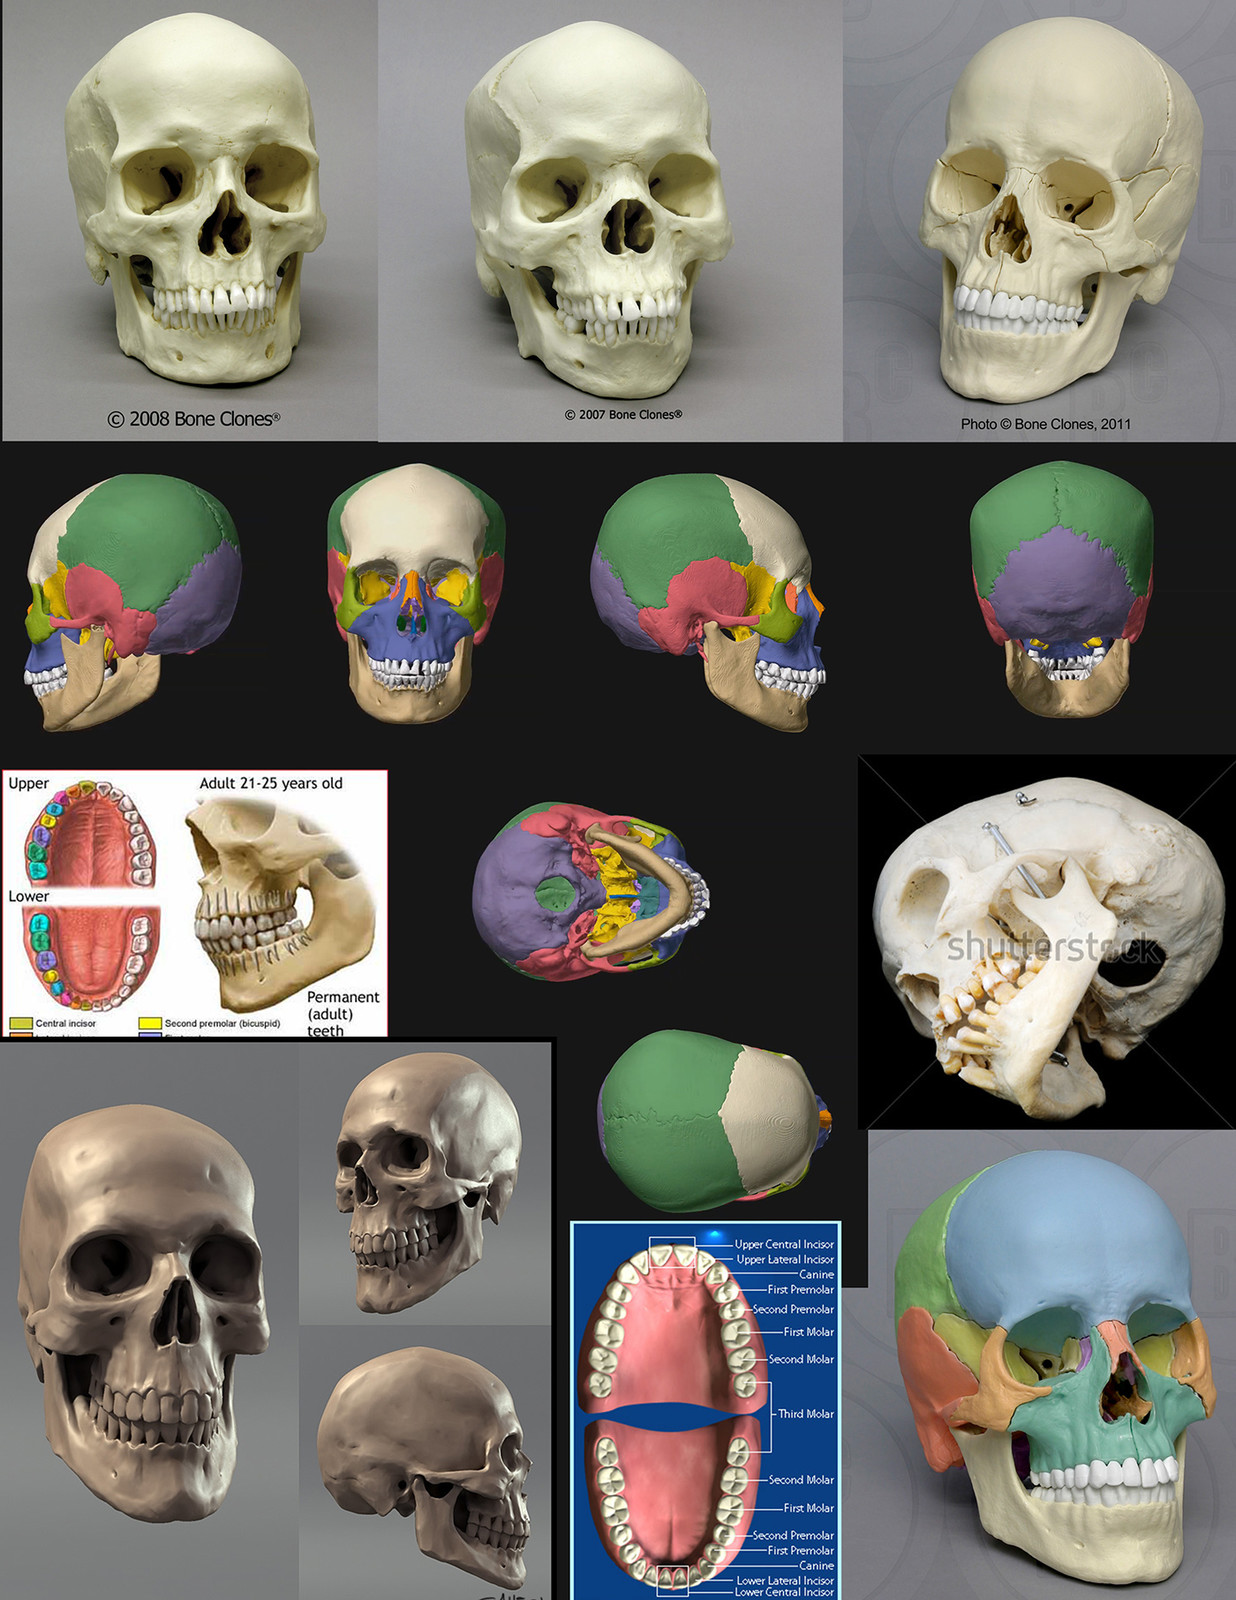 This is the refs collection  I used.  Images from boneclones.com, medical websites, and one digital skull from an artist that I unfortunately can't find anymore and would like to credit for the image here.